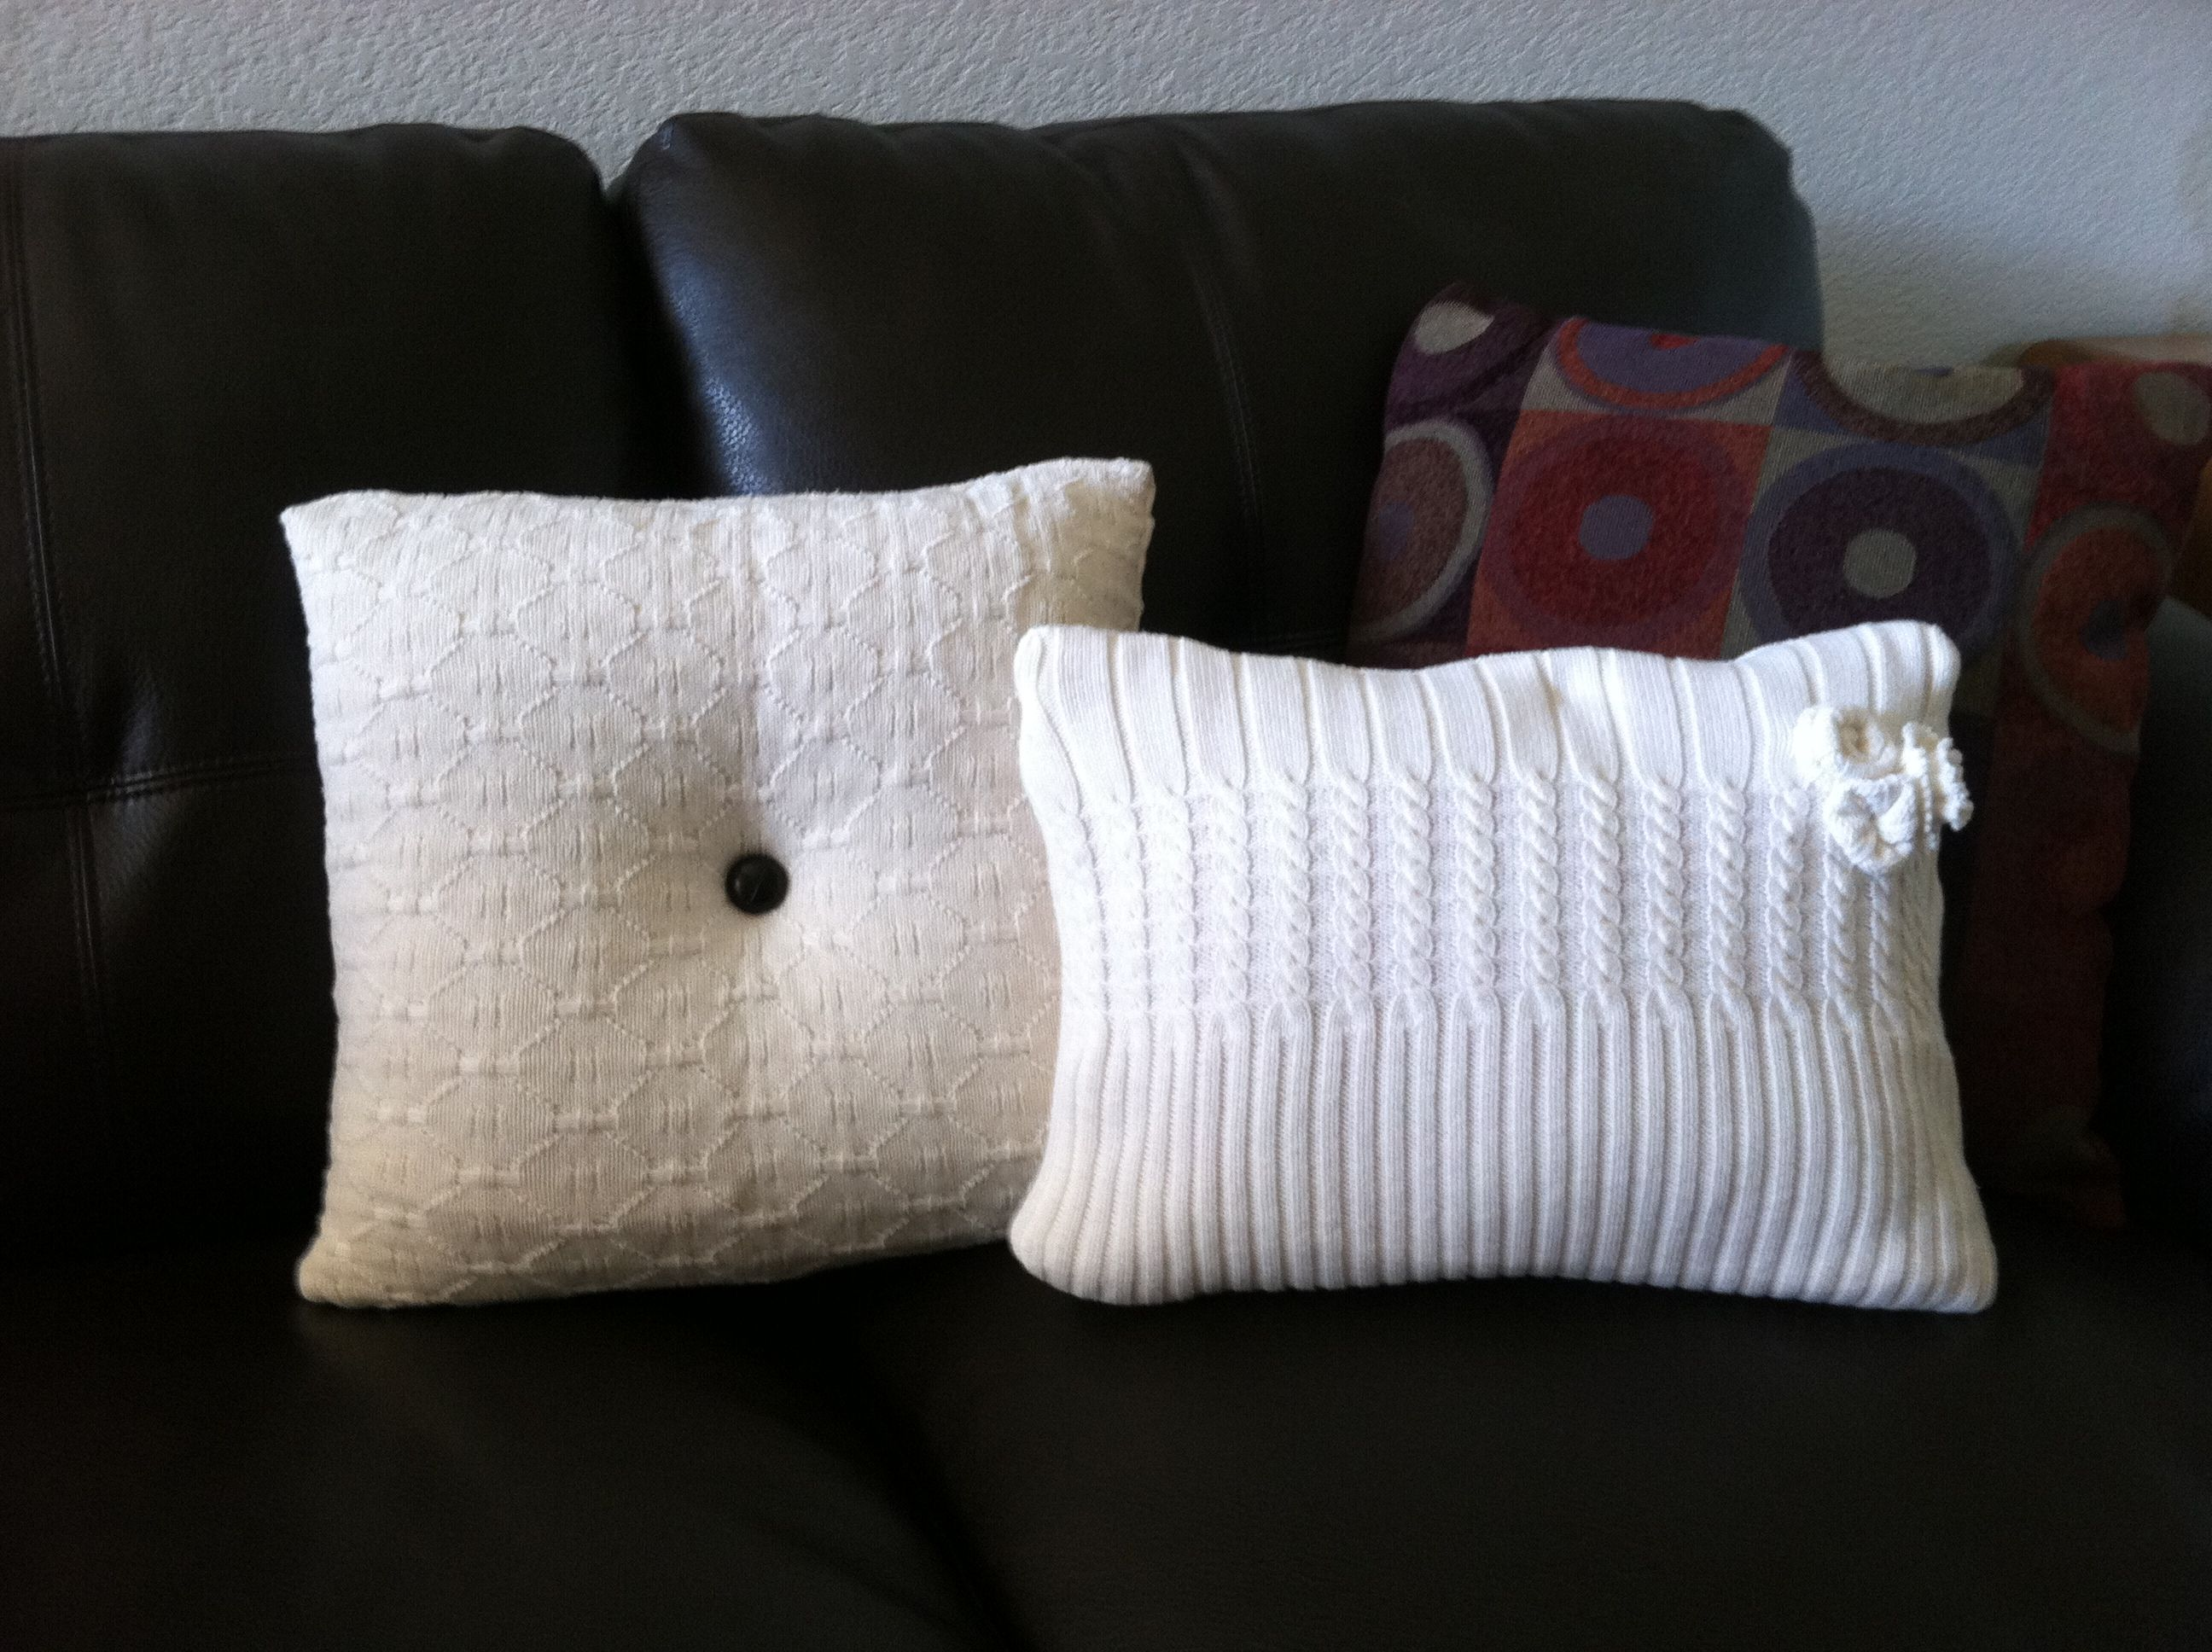 My version of sweater pillows.  Sweaters were purchased from Goodwill for $3 each.